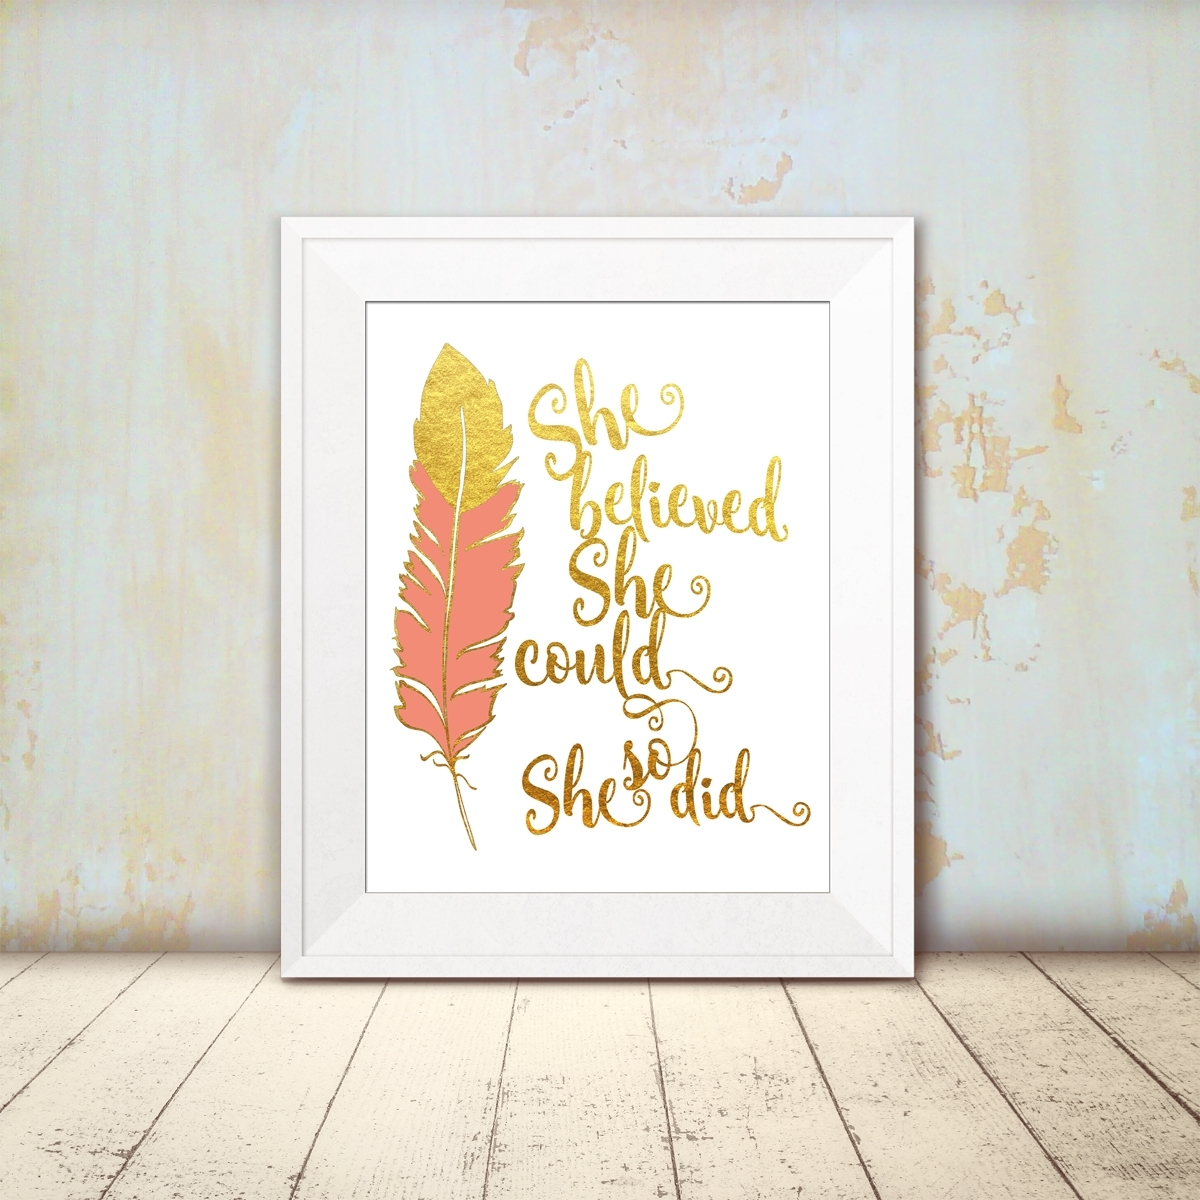 She Believed Inspirational Feather Print Intended For 2018 She Believed She Could So She Did Wall Art (View 7 of 20)